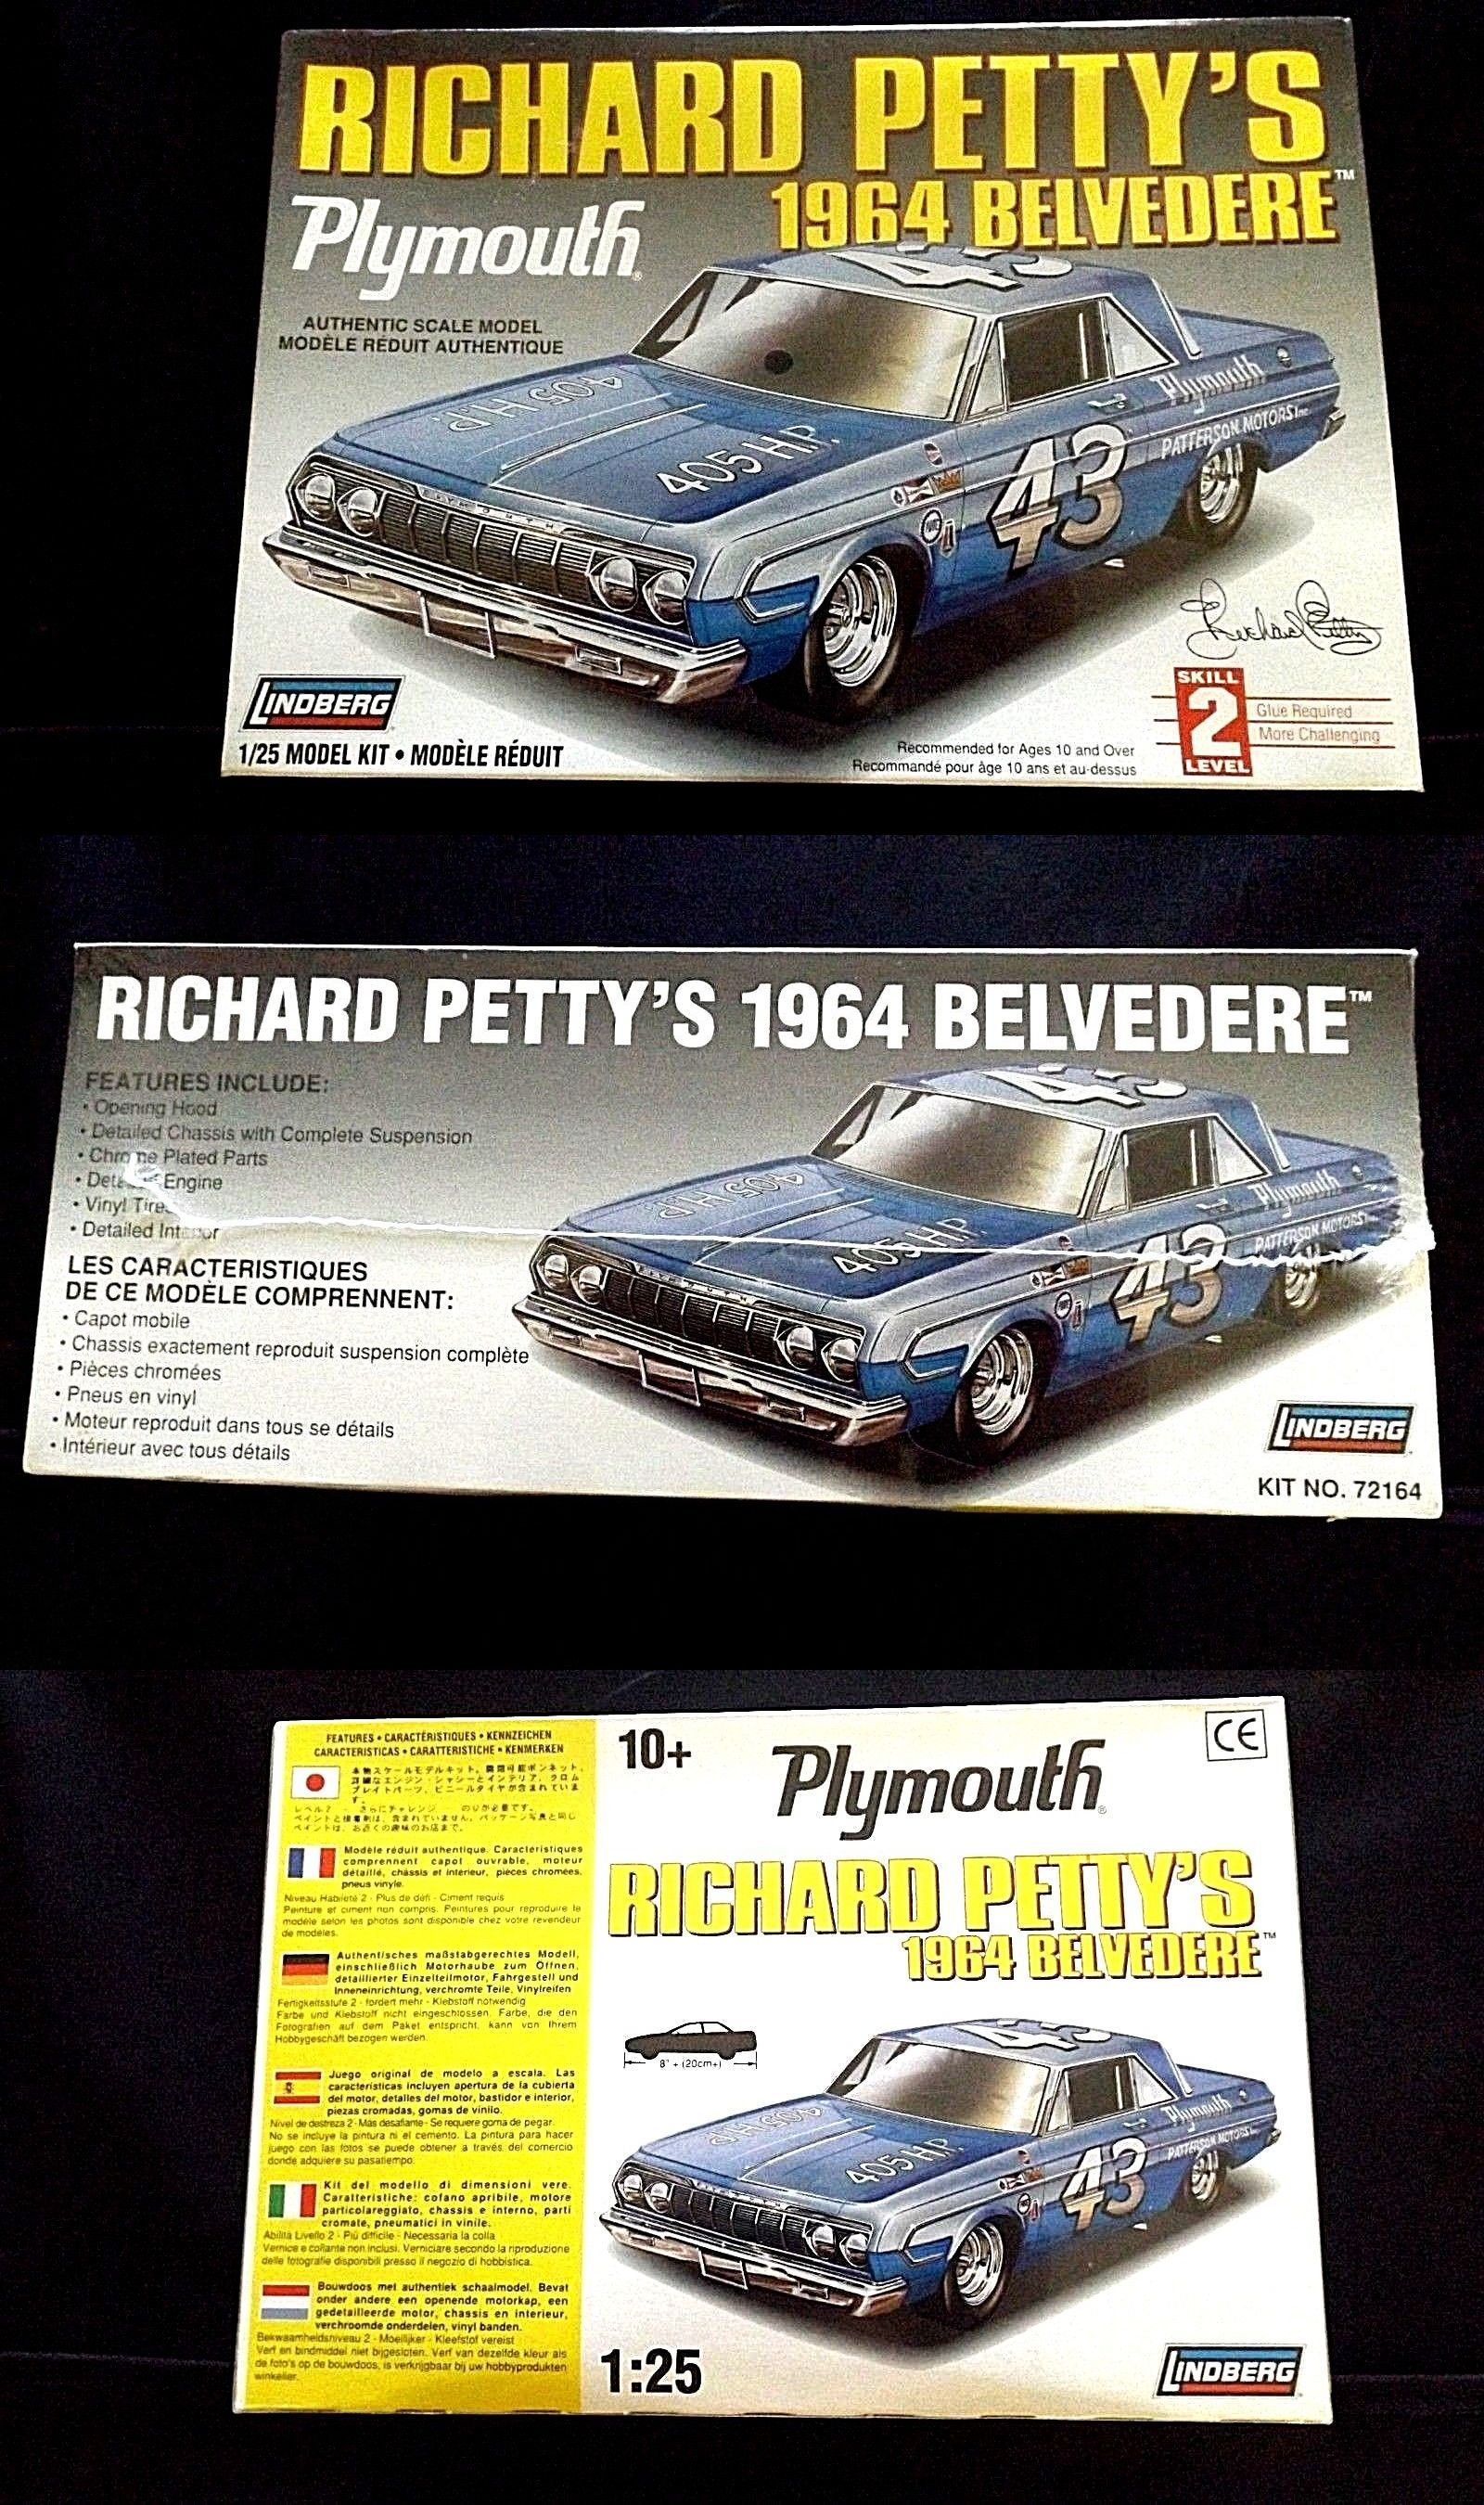 Bmw Interieur Verf Kits 145964 Model Kit Nascar 43 Richard Petty S 1964 Plymouth